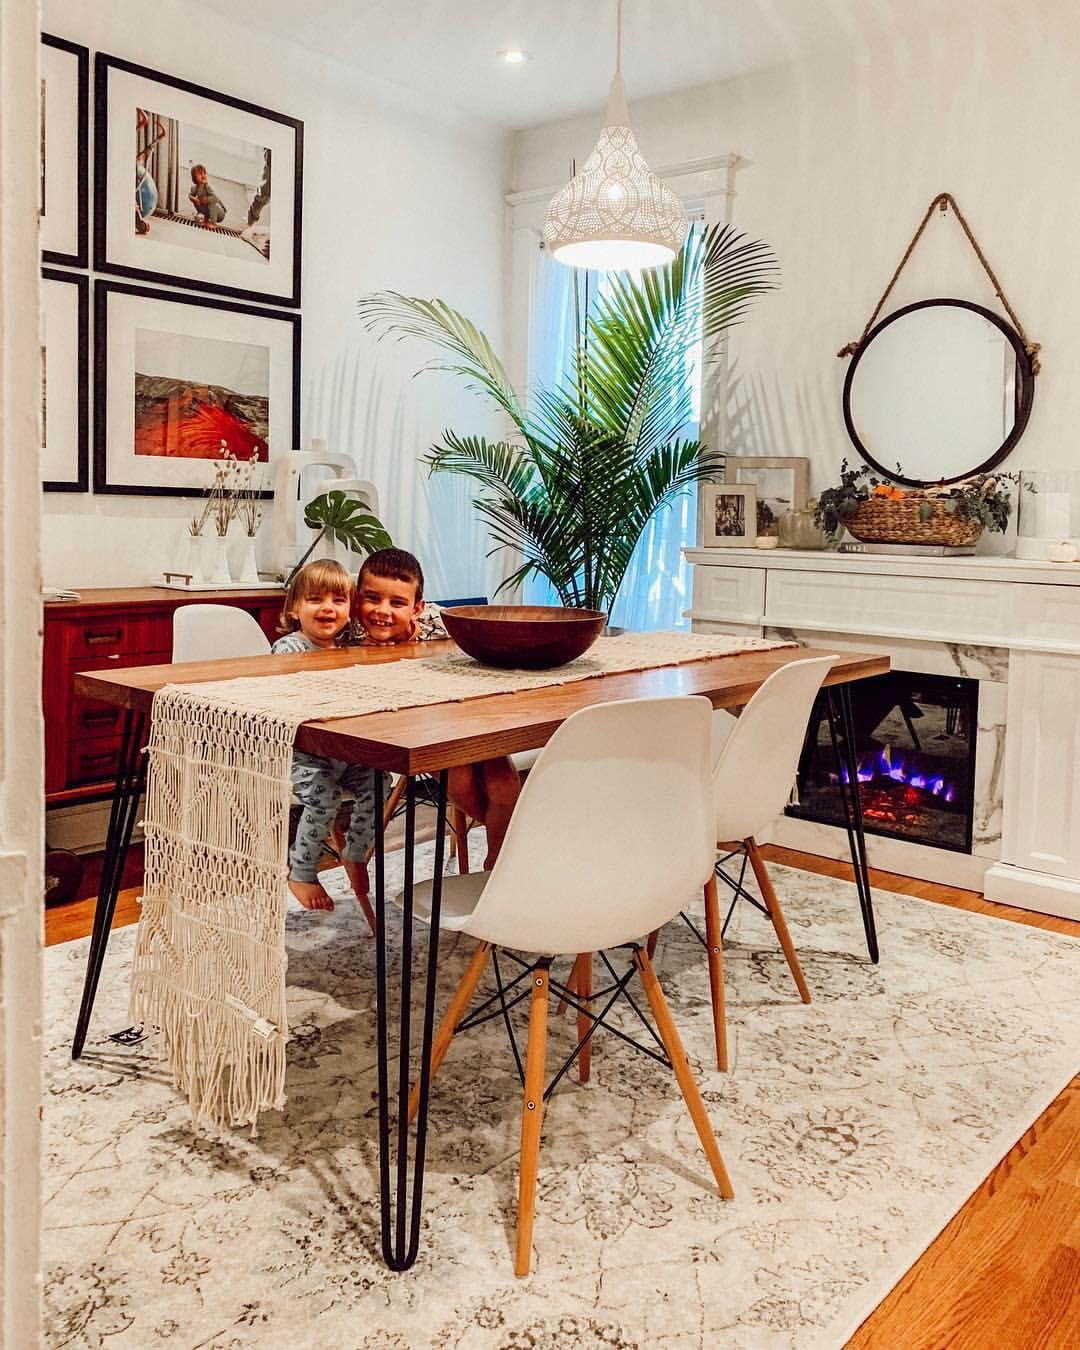 Dining Room Rugs Can Be Practical If You Follow These Rules Dining Room Rug Area Rug Dining Room Dining Room Fireplace